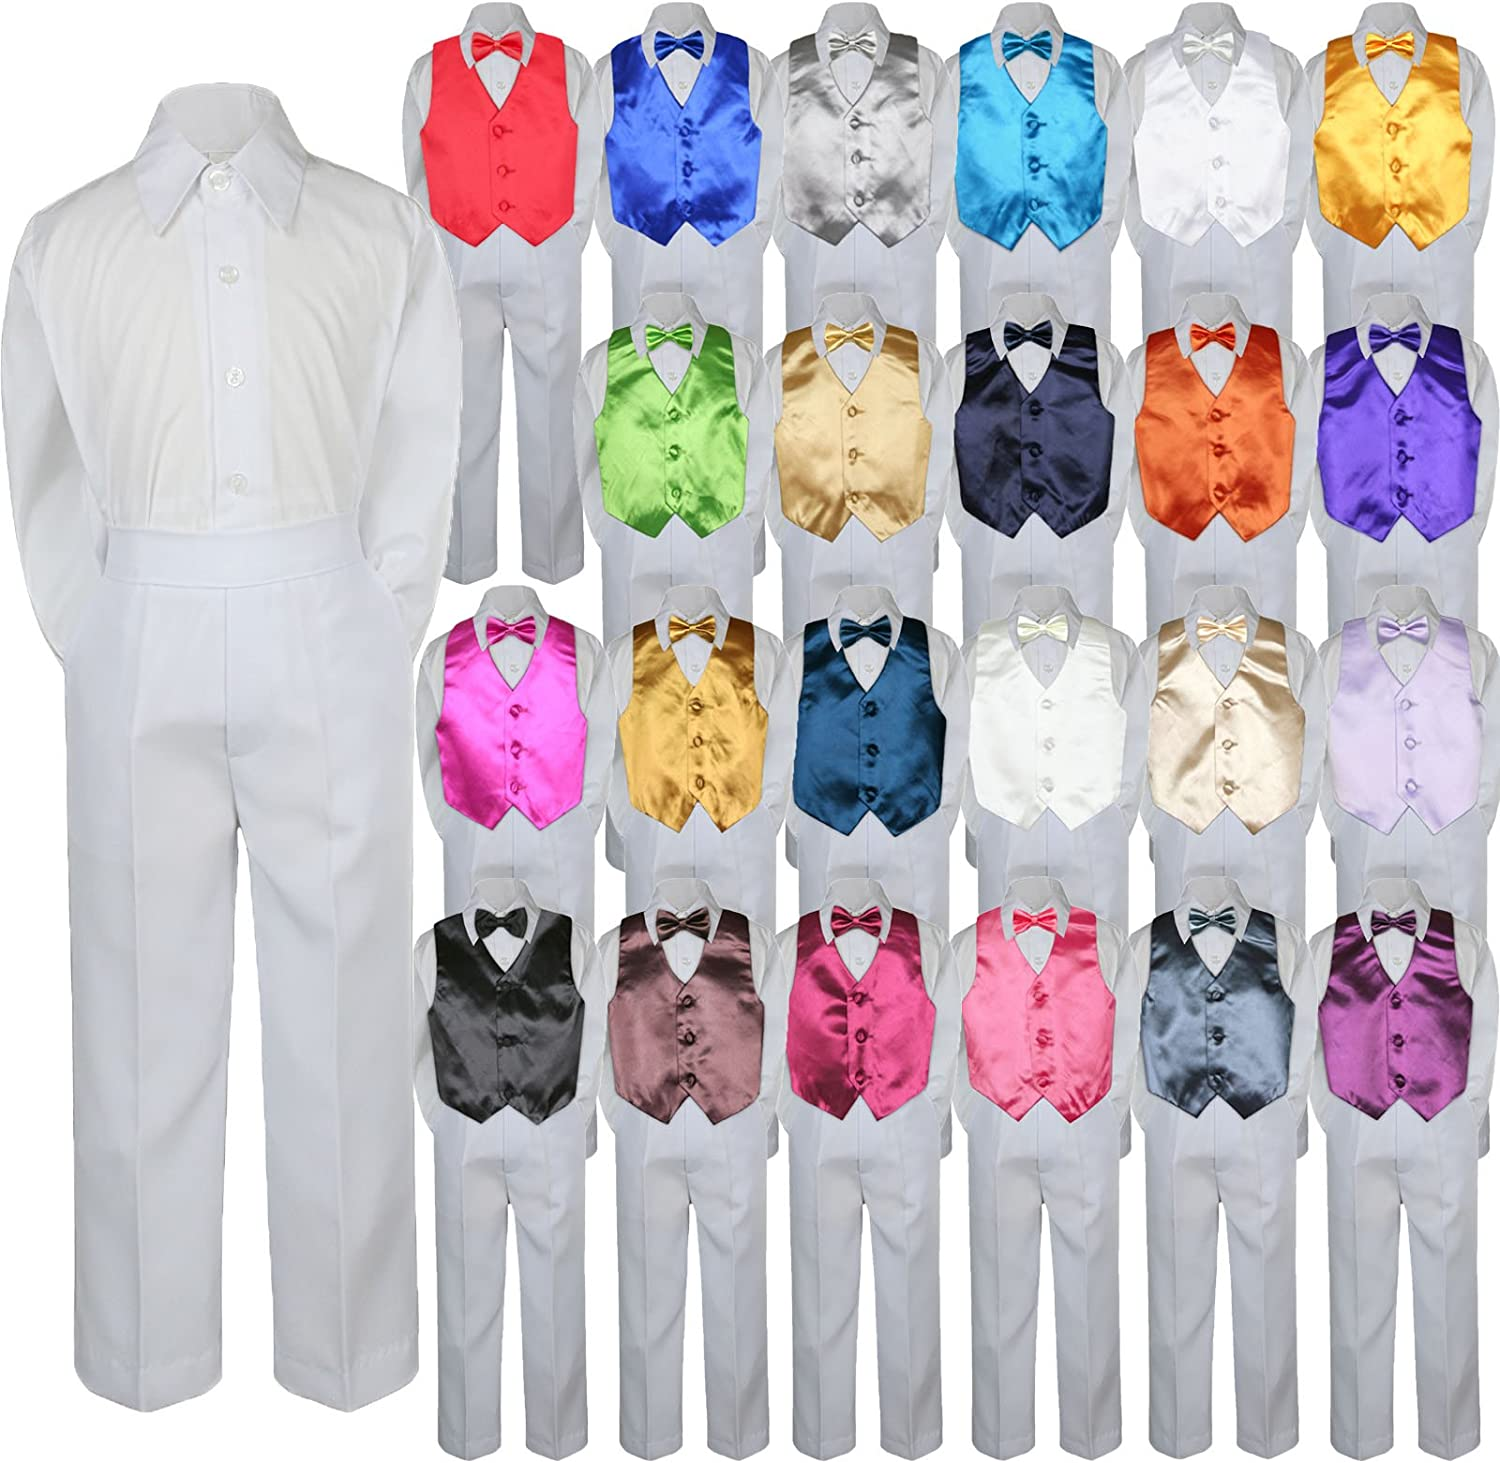 4pc Baby Toddler Kid Boy Formal Vest Bow Shirt Pants 35% Luxury OFF White Suit